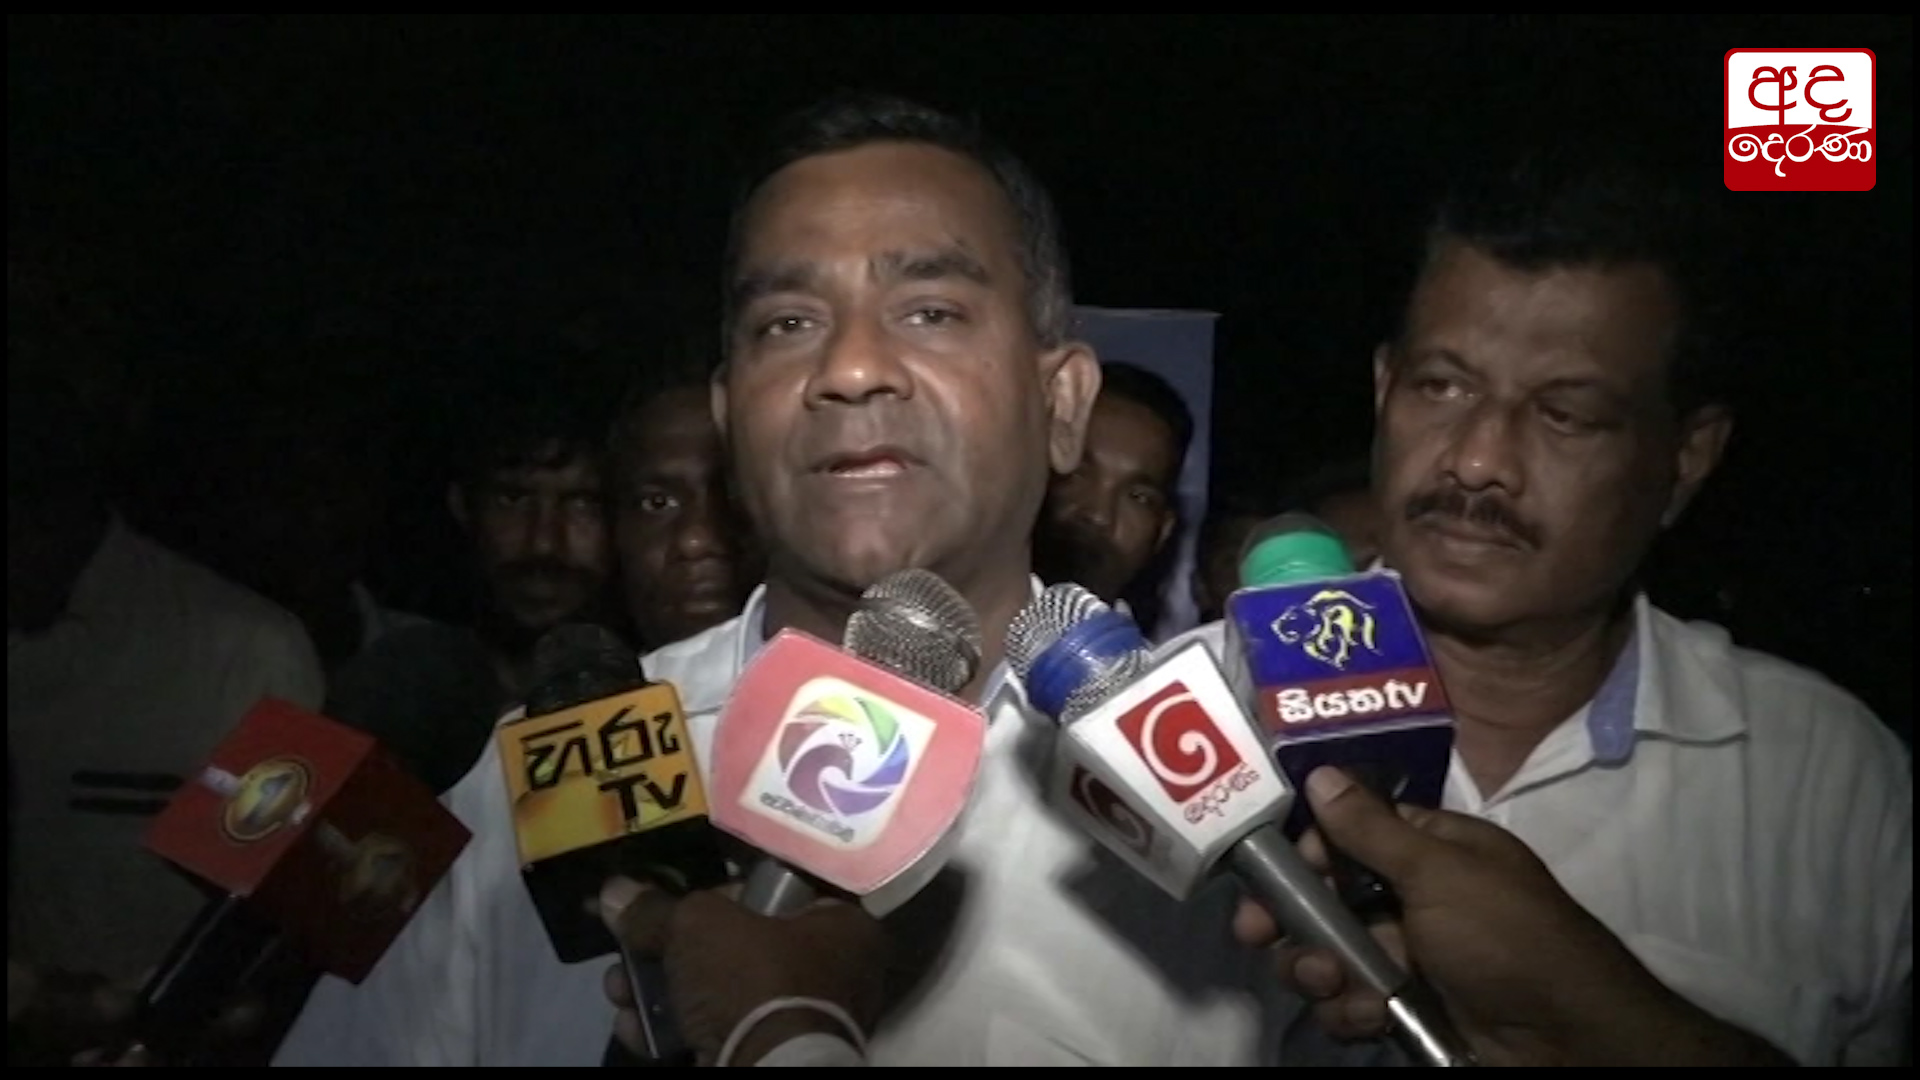 Next presidential election will be between 2 new candidates-Tissa